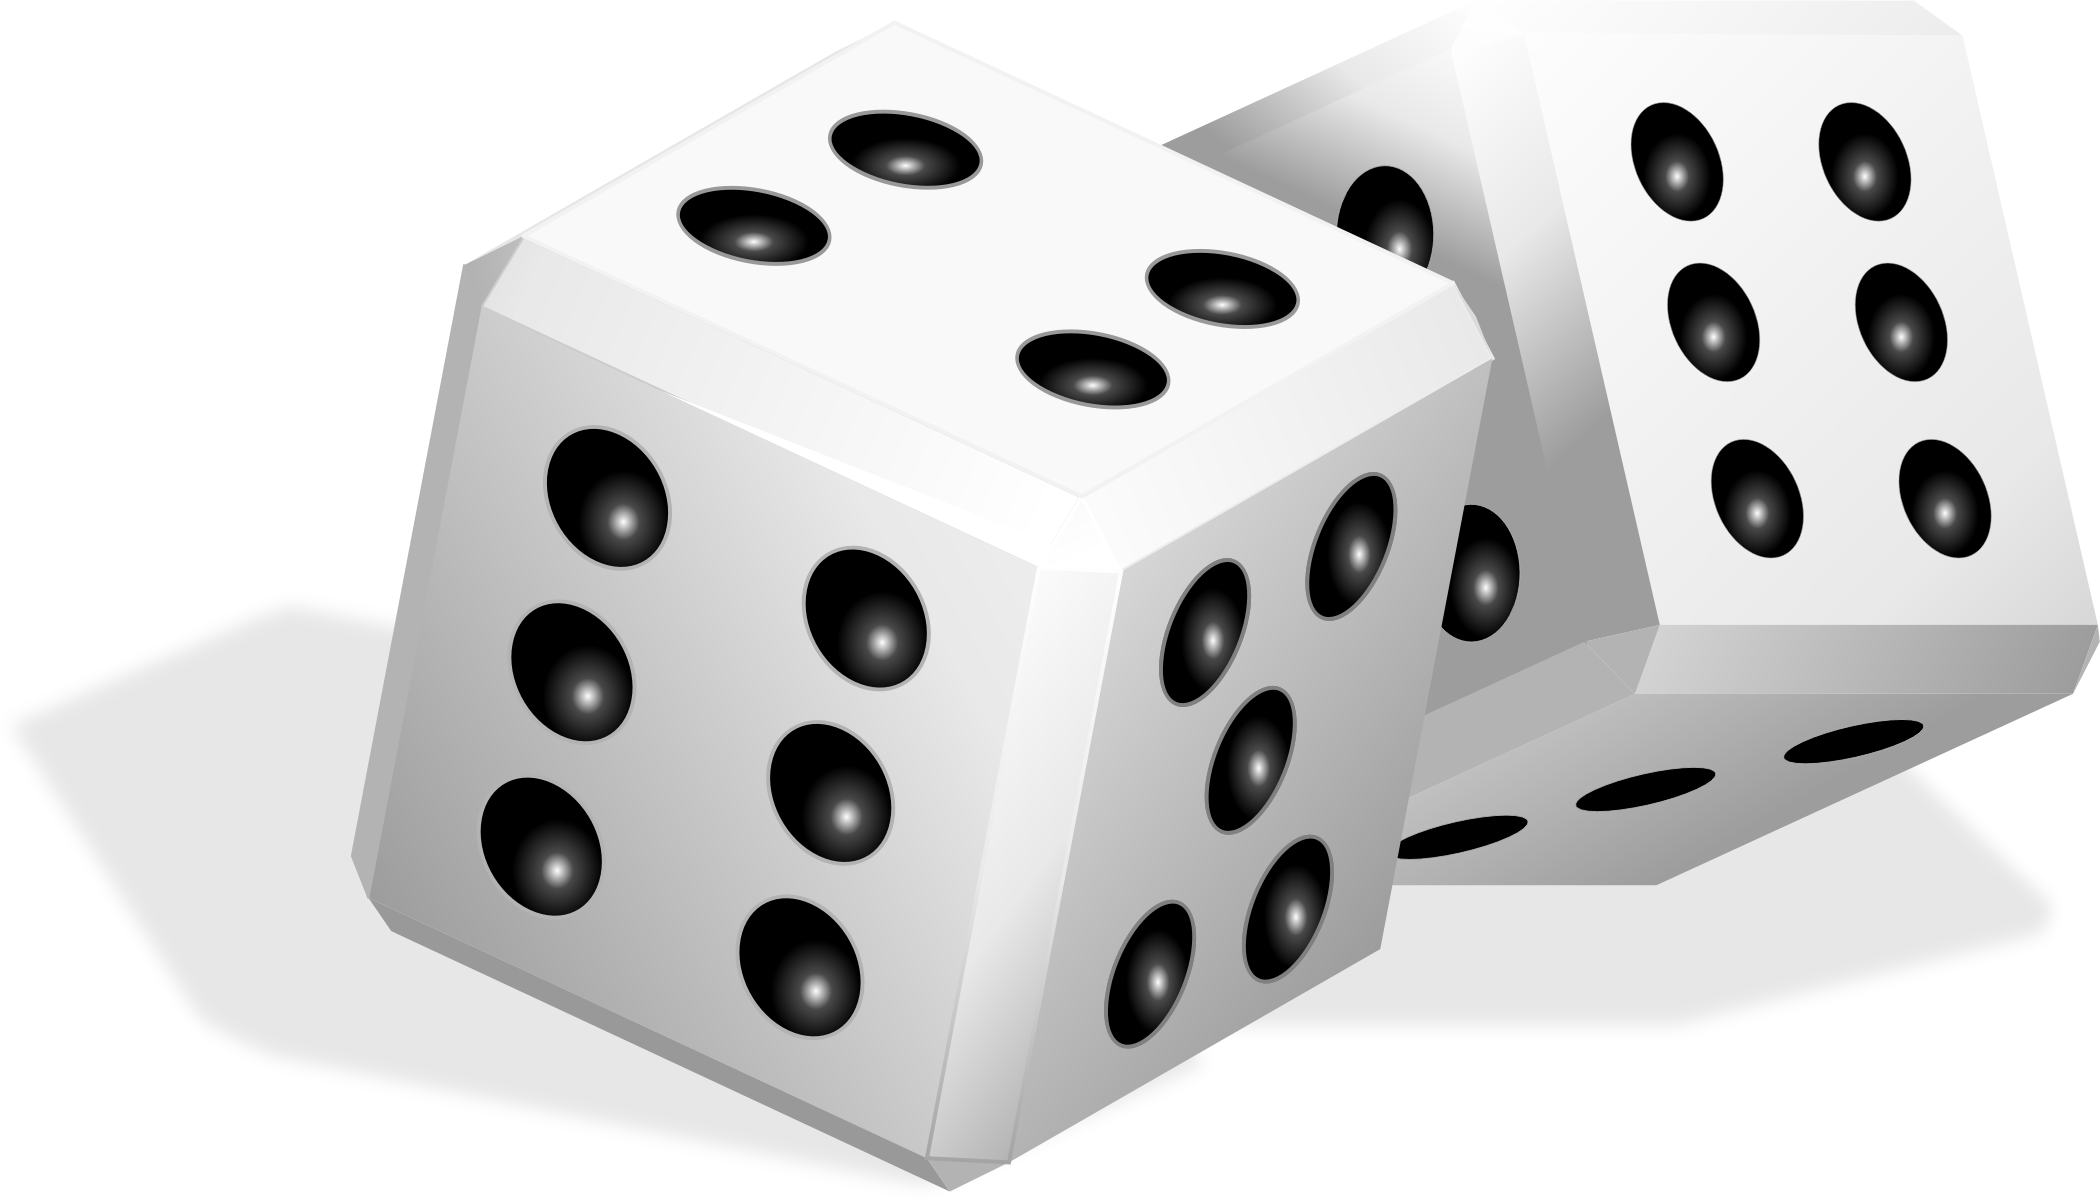 dice transparent png